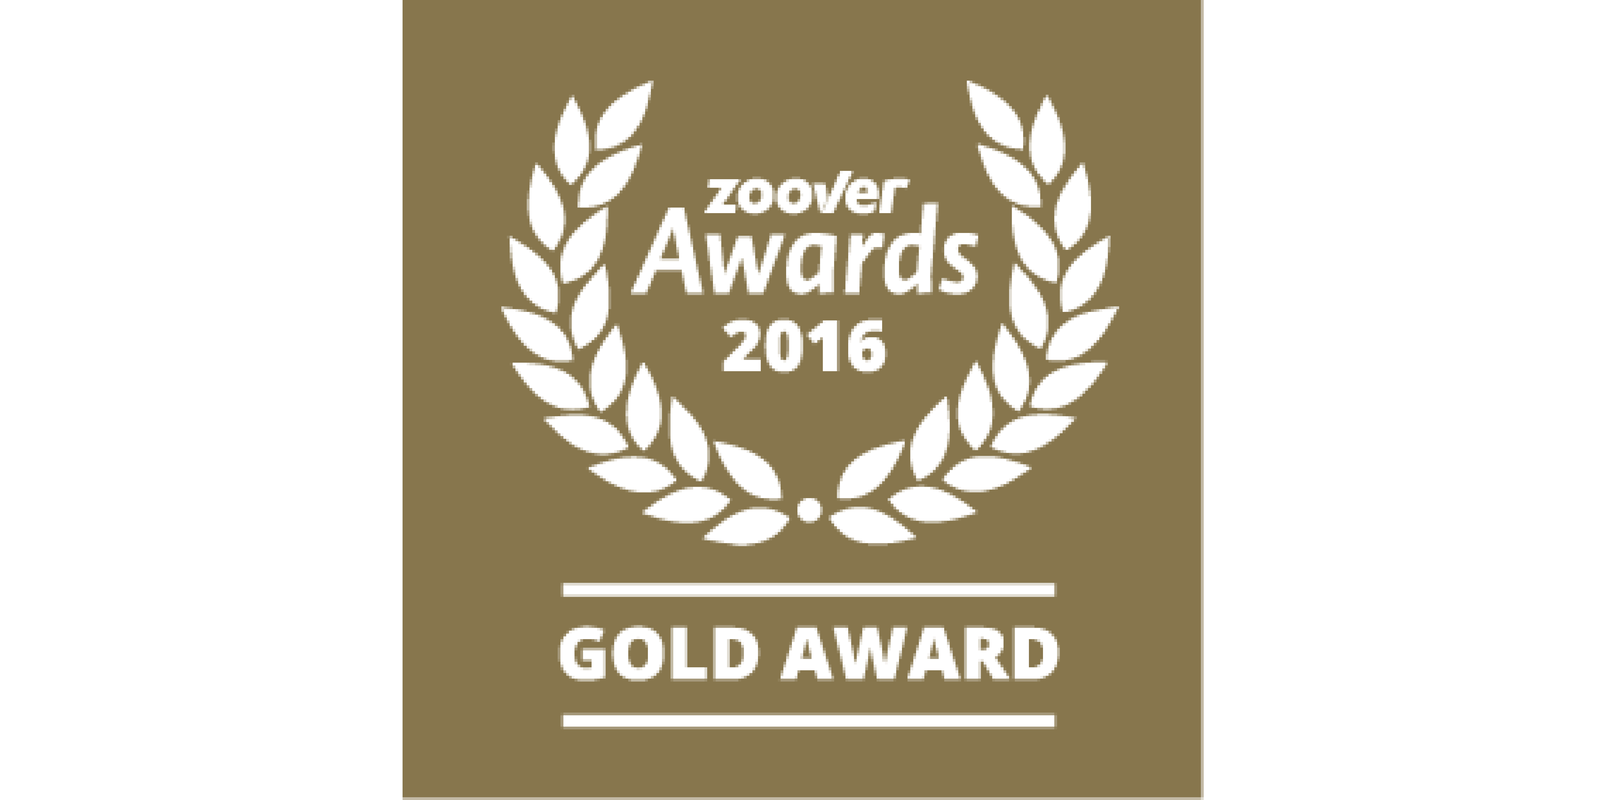 Golden Zoover Award